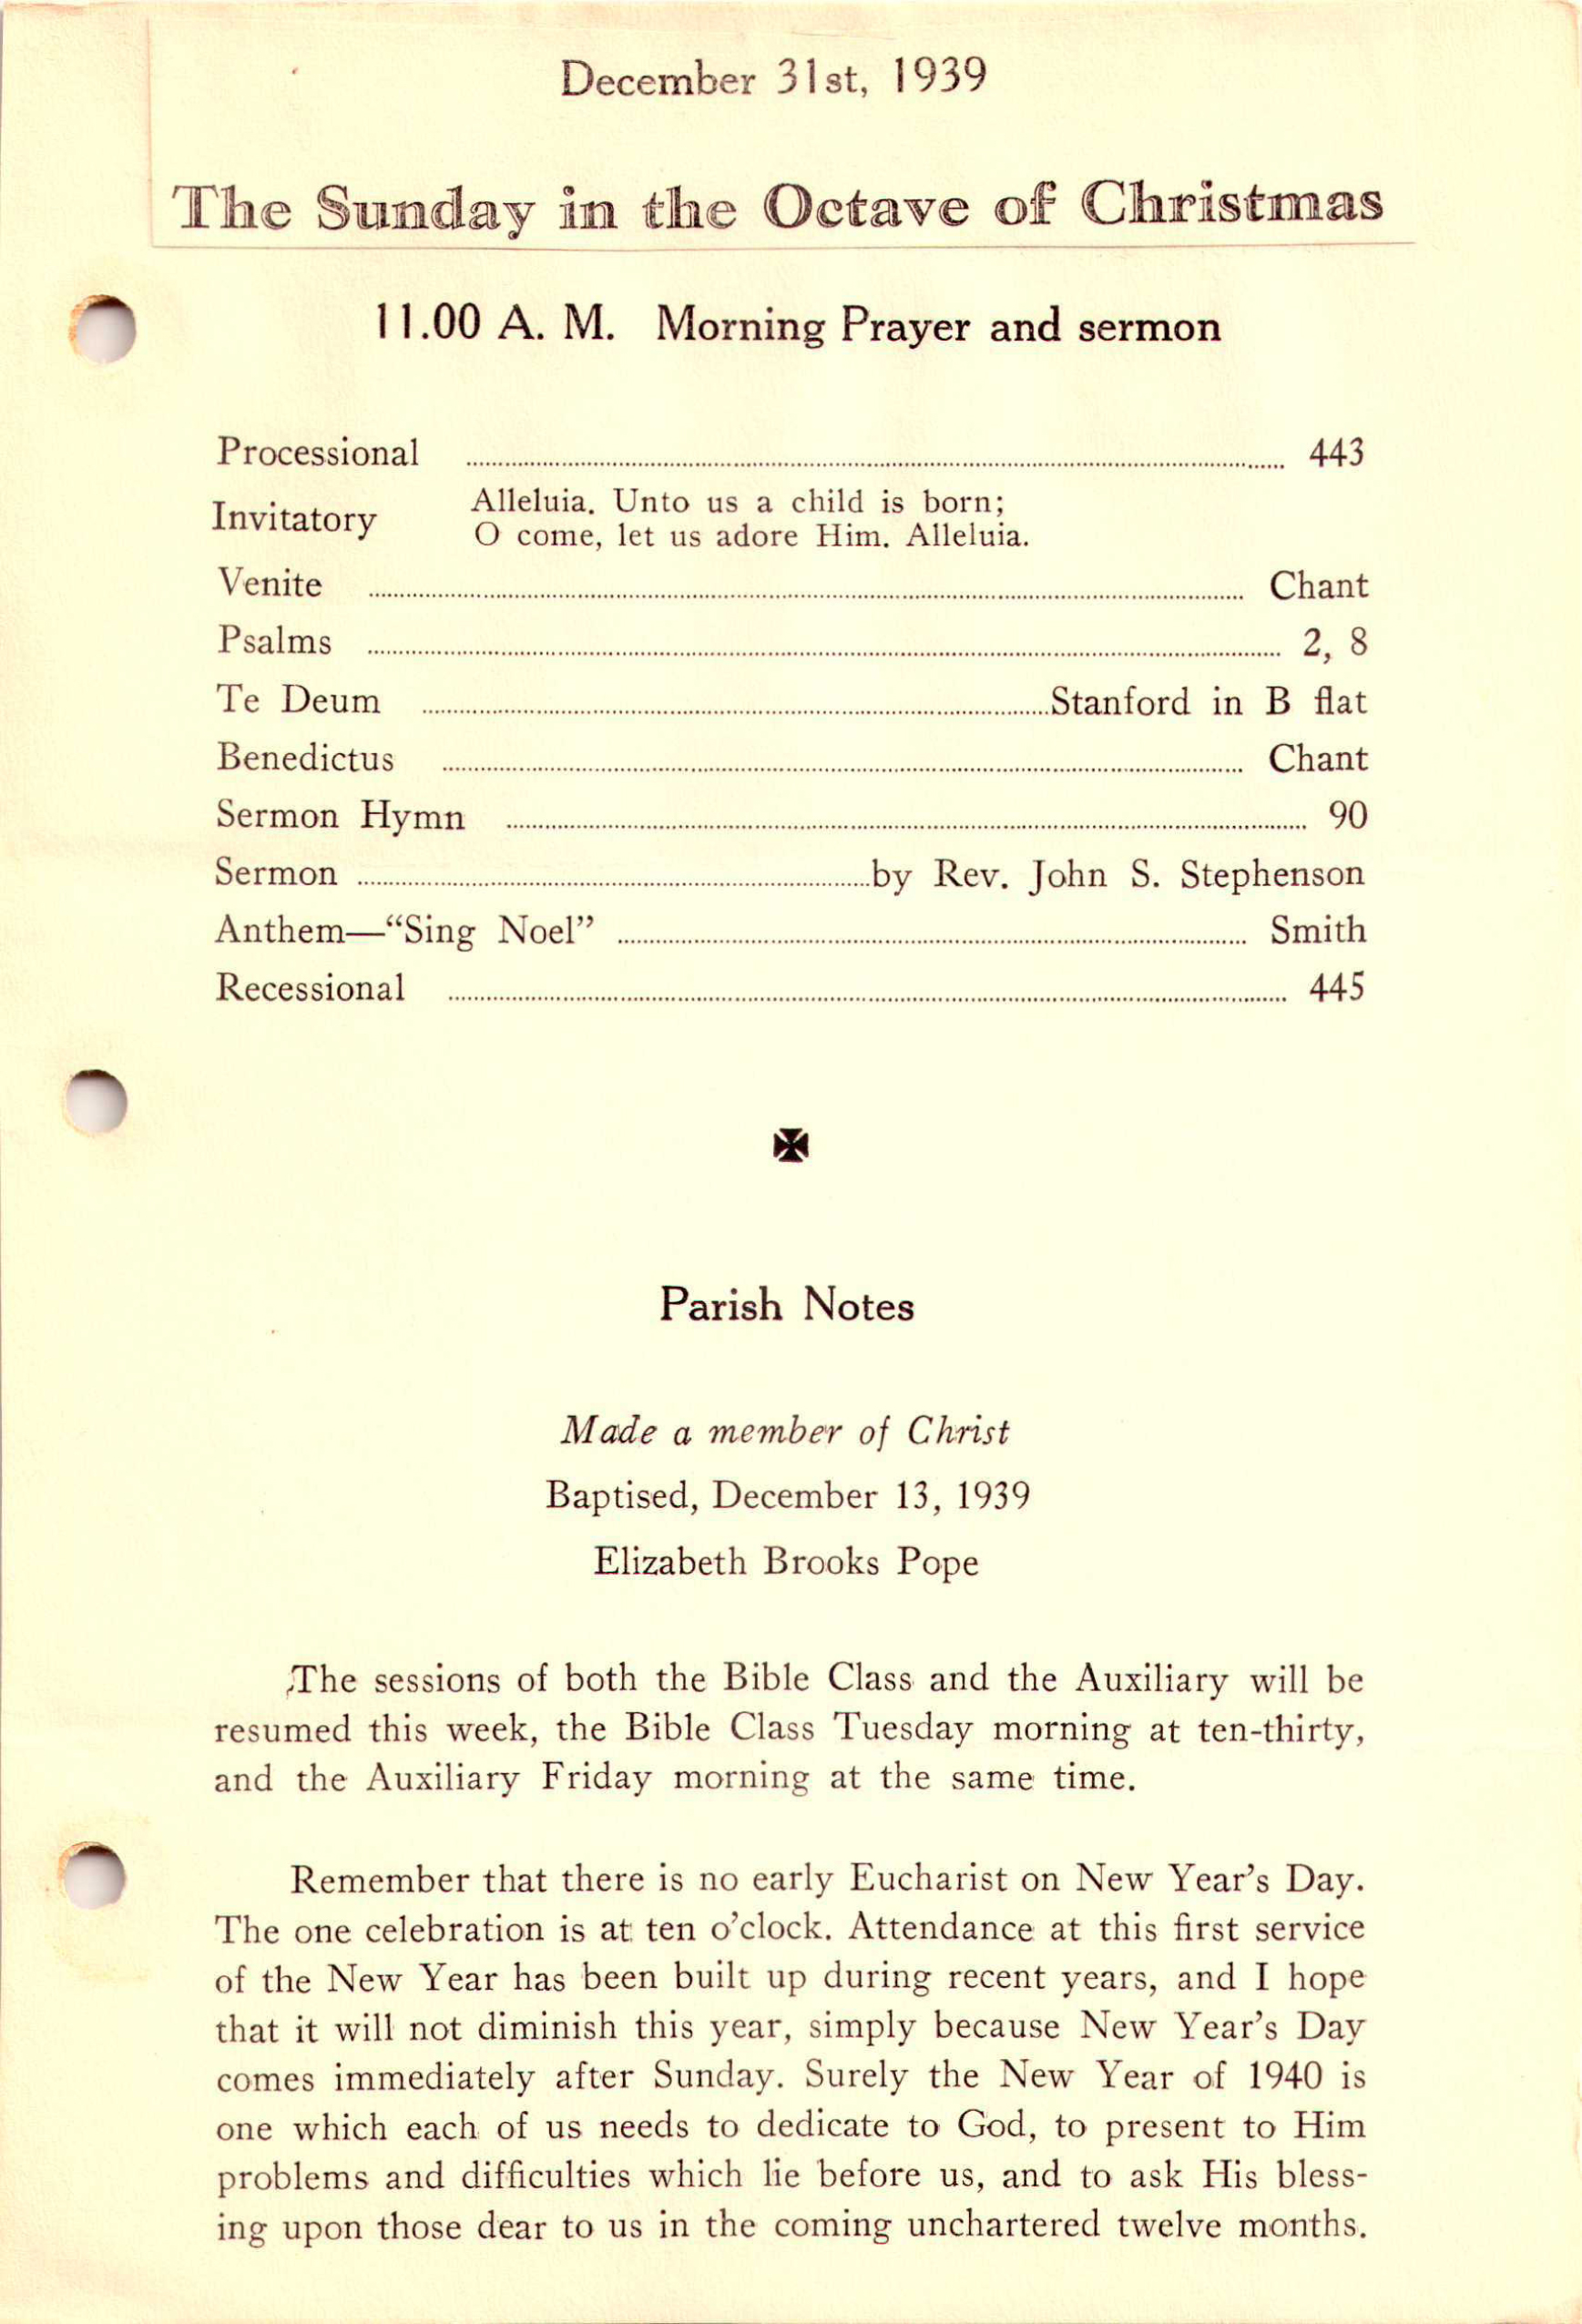 Parish News of St. Martin-in-the-Fields: Sunday in the Octave of ...